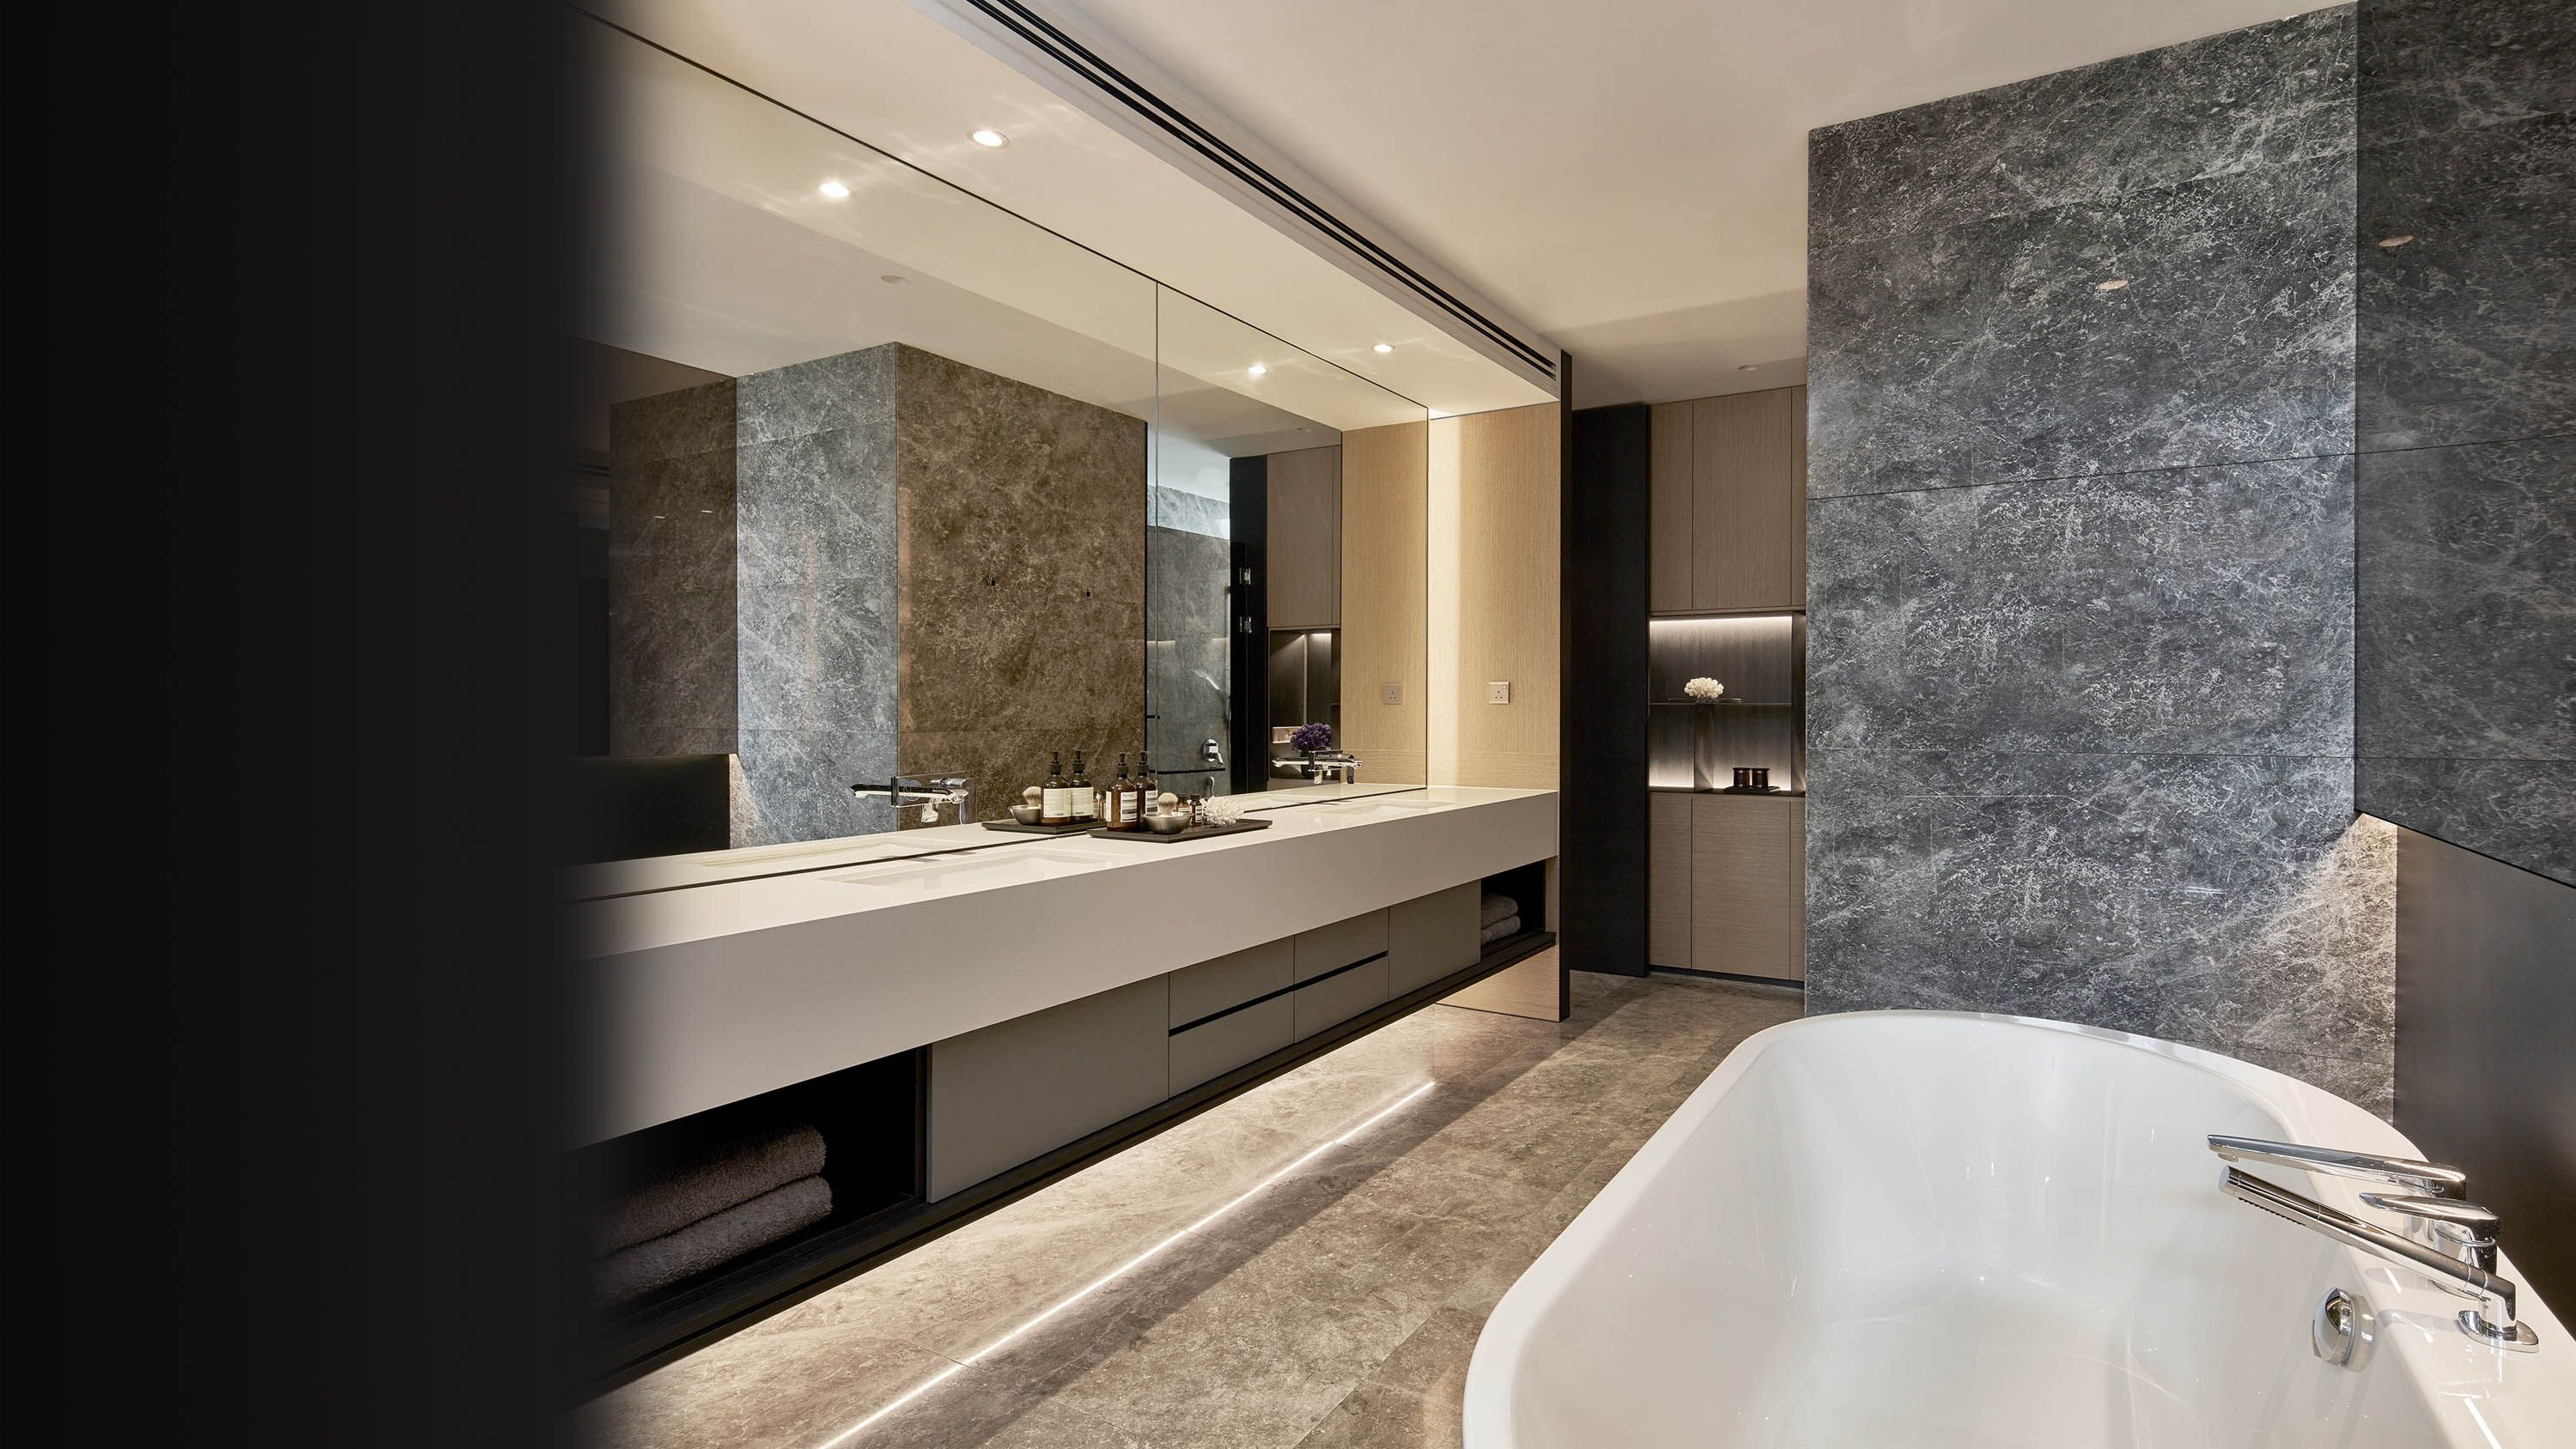 4 - Singapore Architectural And Interior Design  Big bathrooms